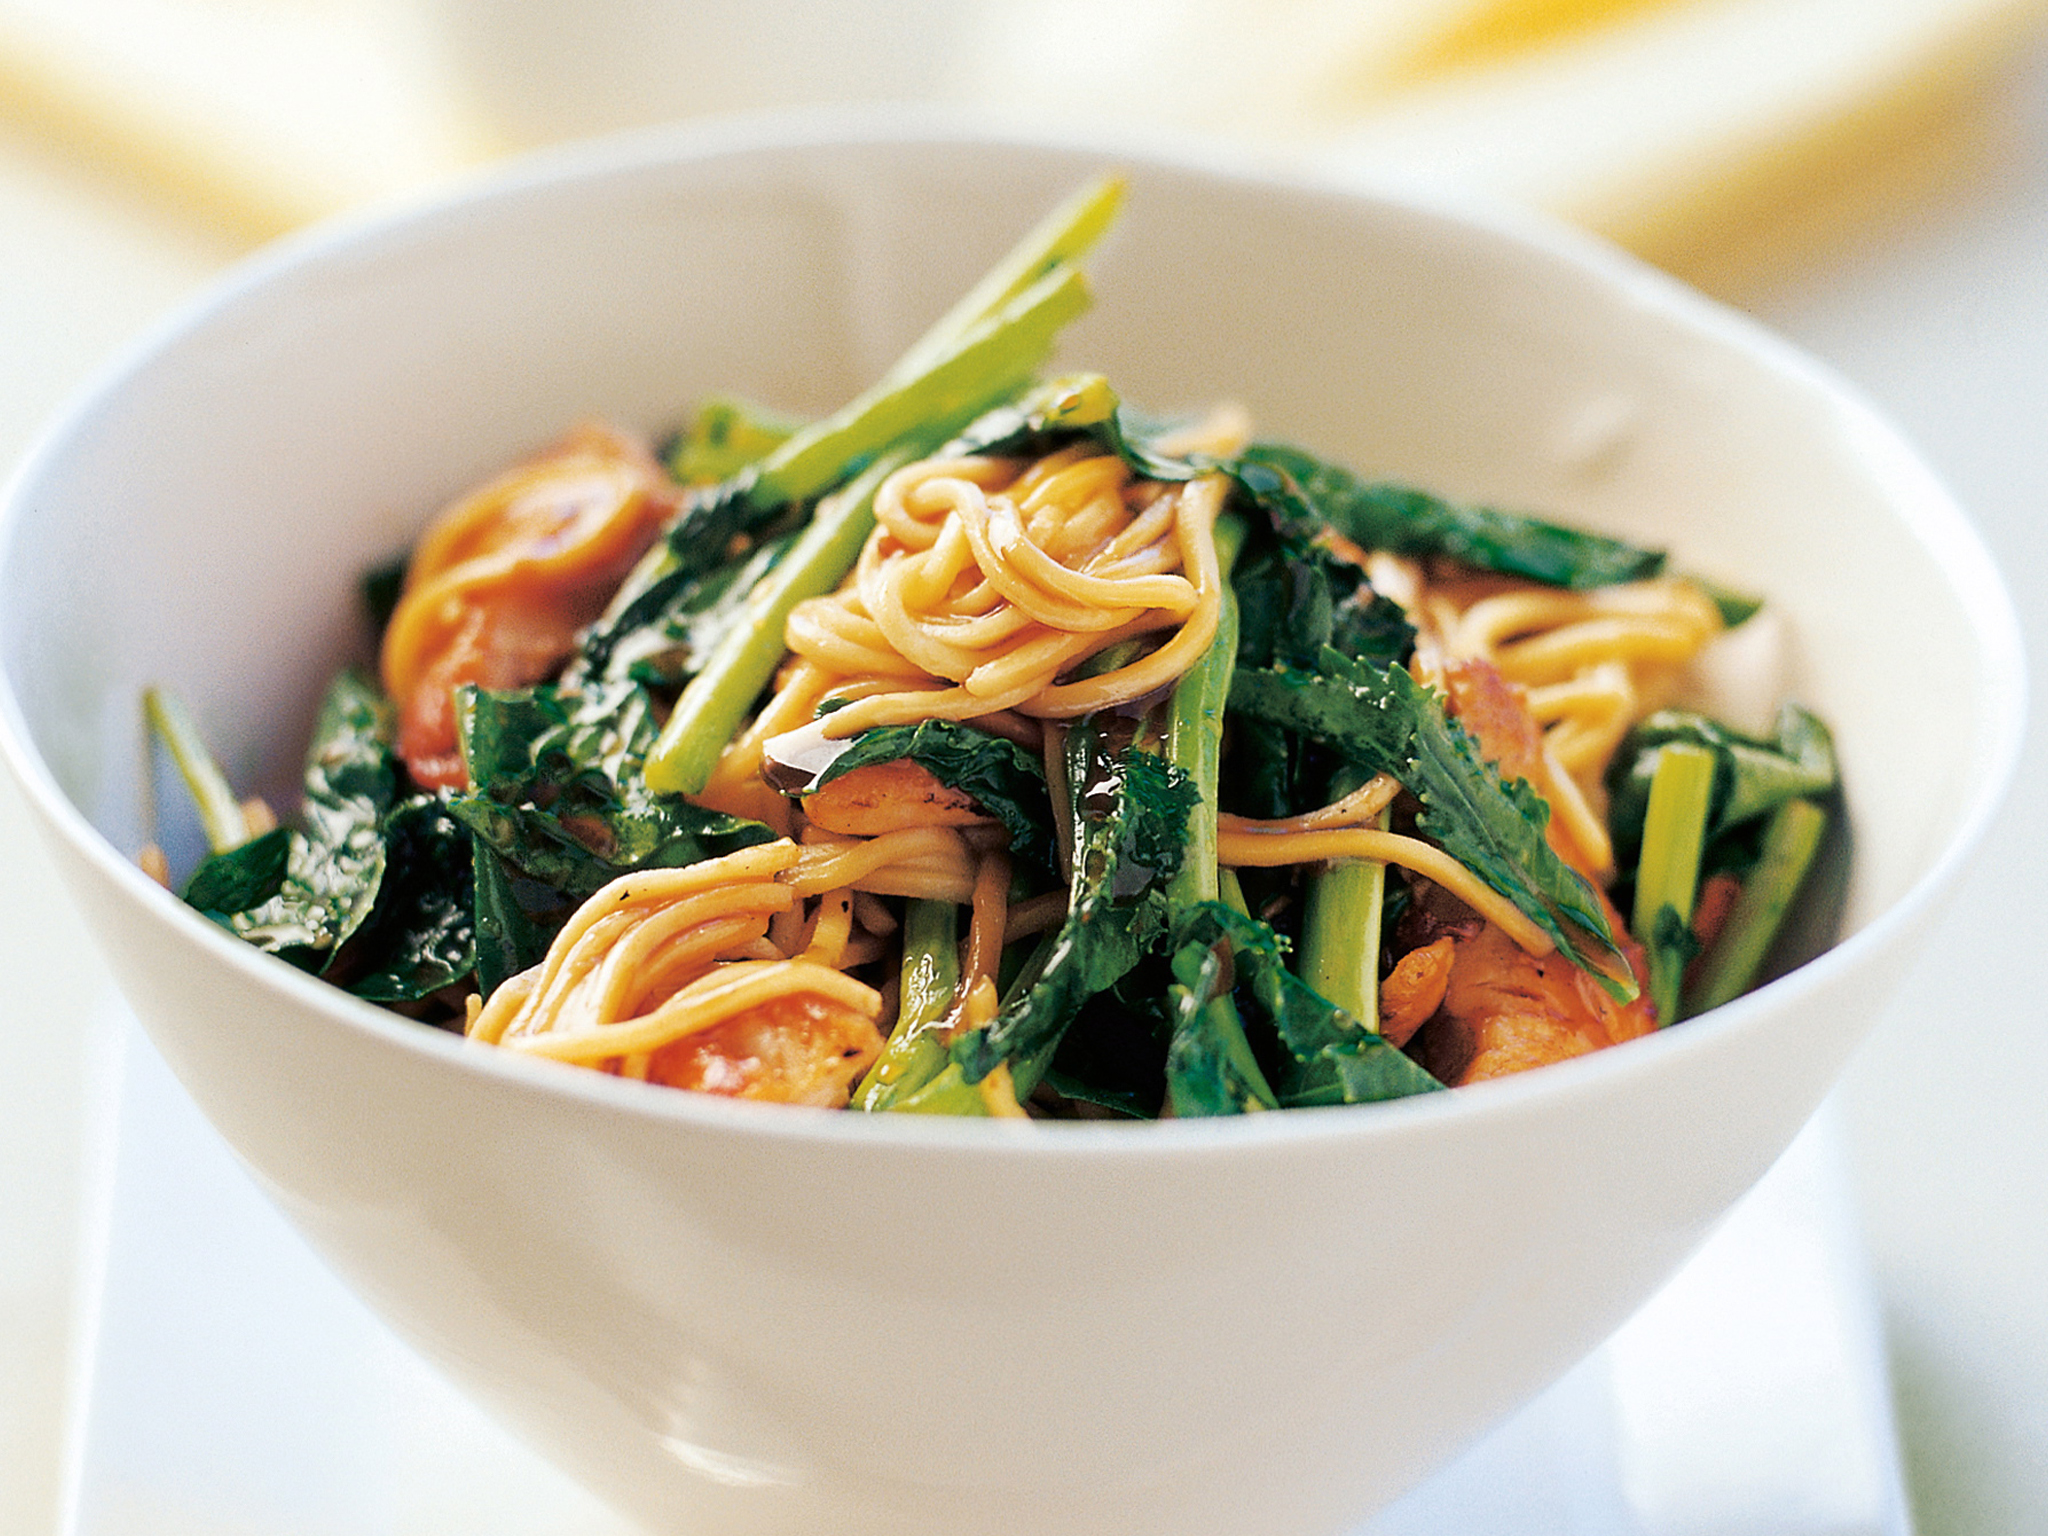 Chicken and chinese broccoli stir fry recipe food to love forumfinder Choice Image